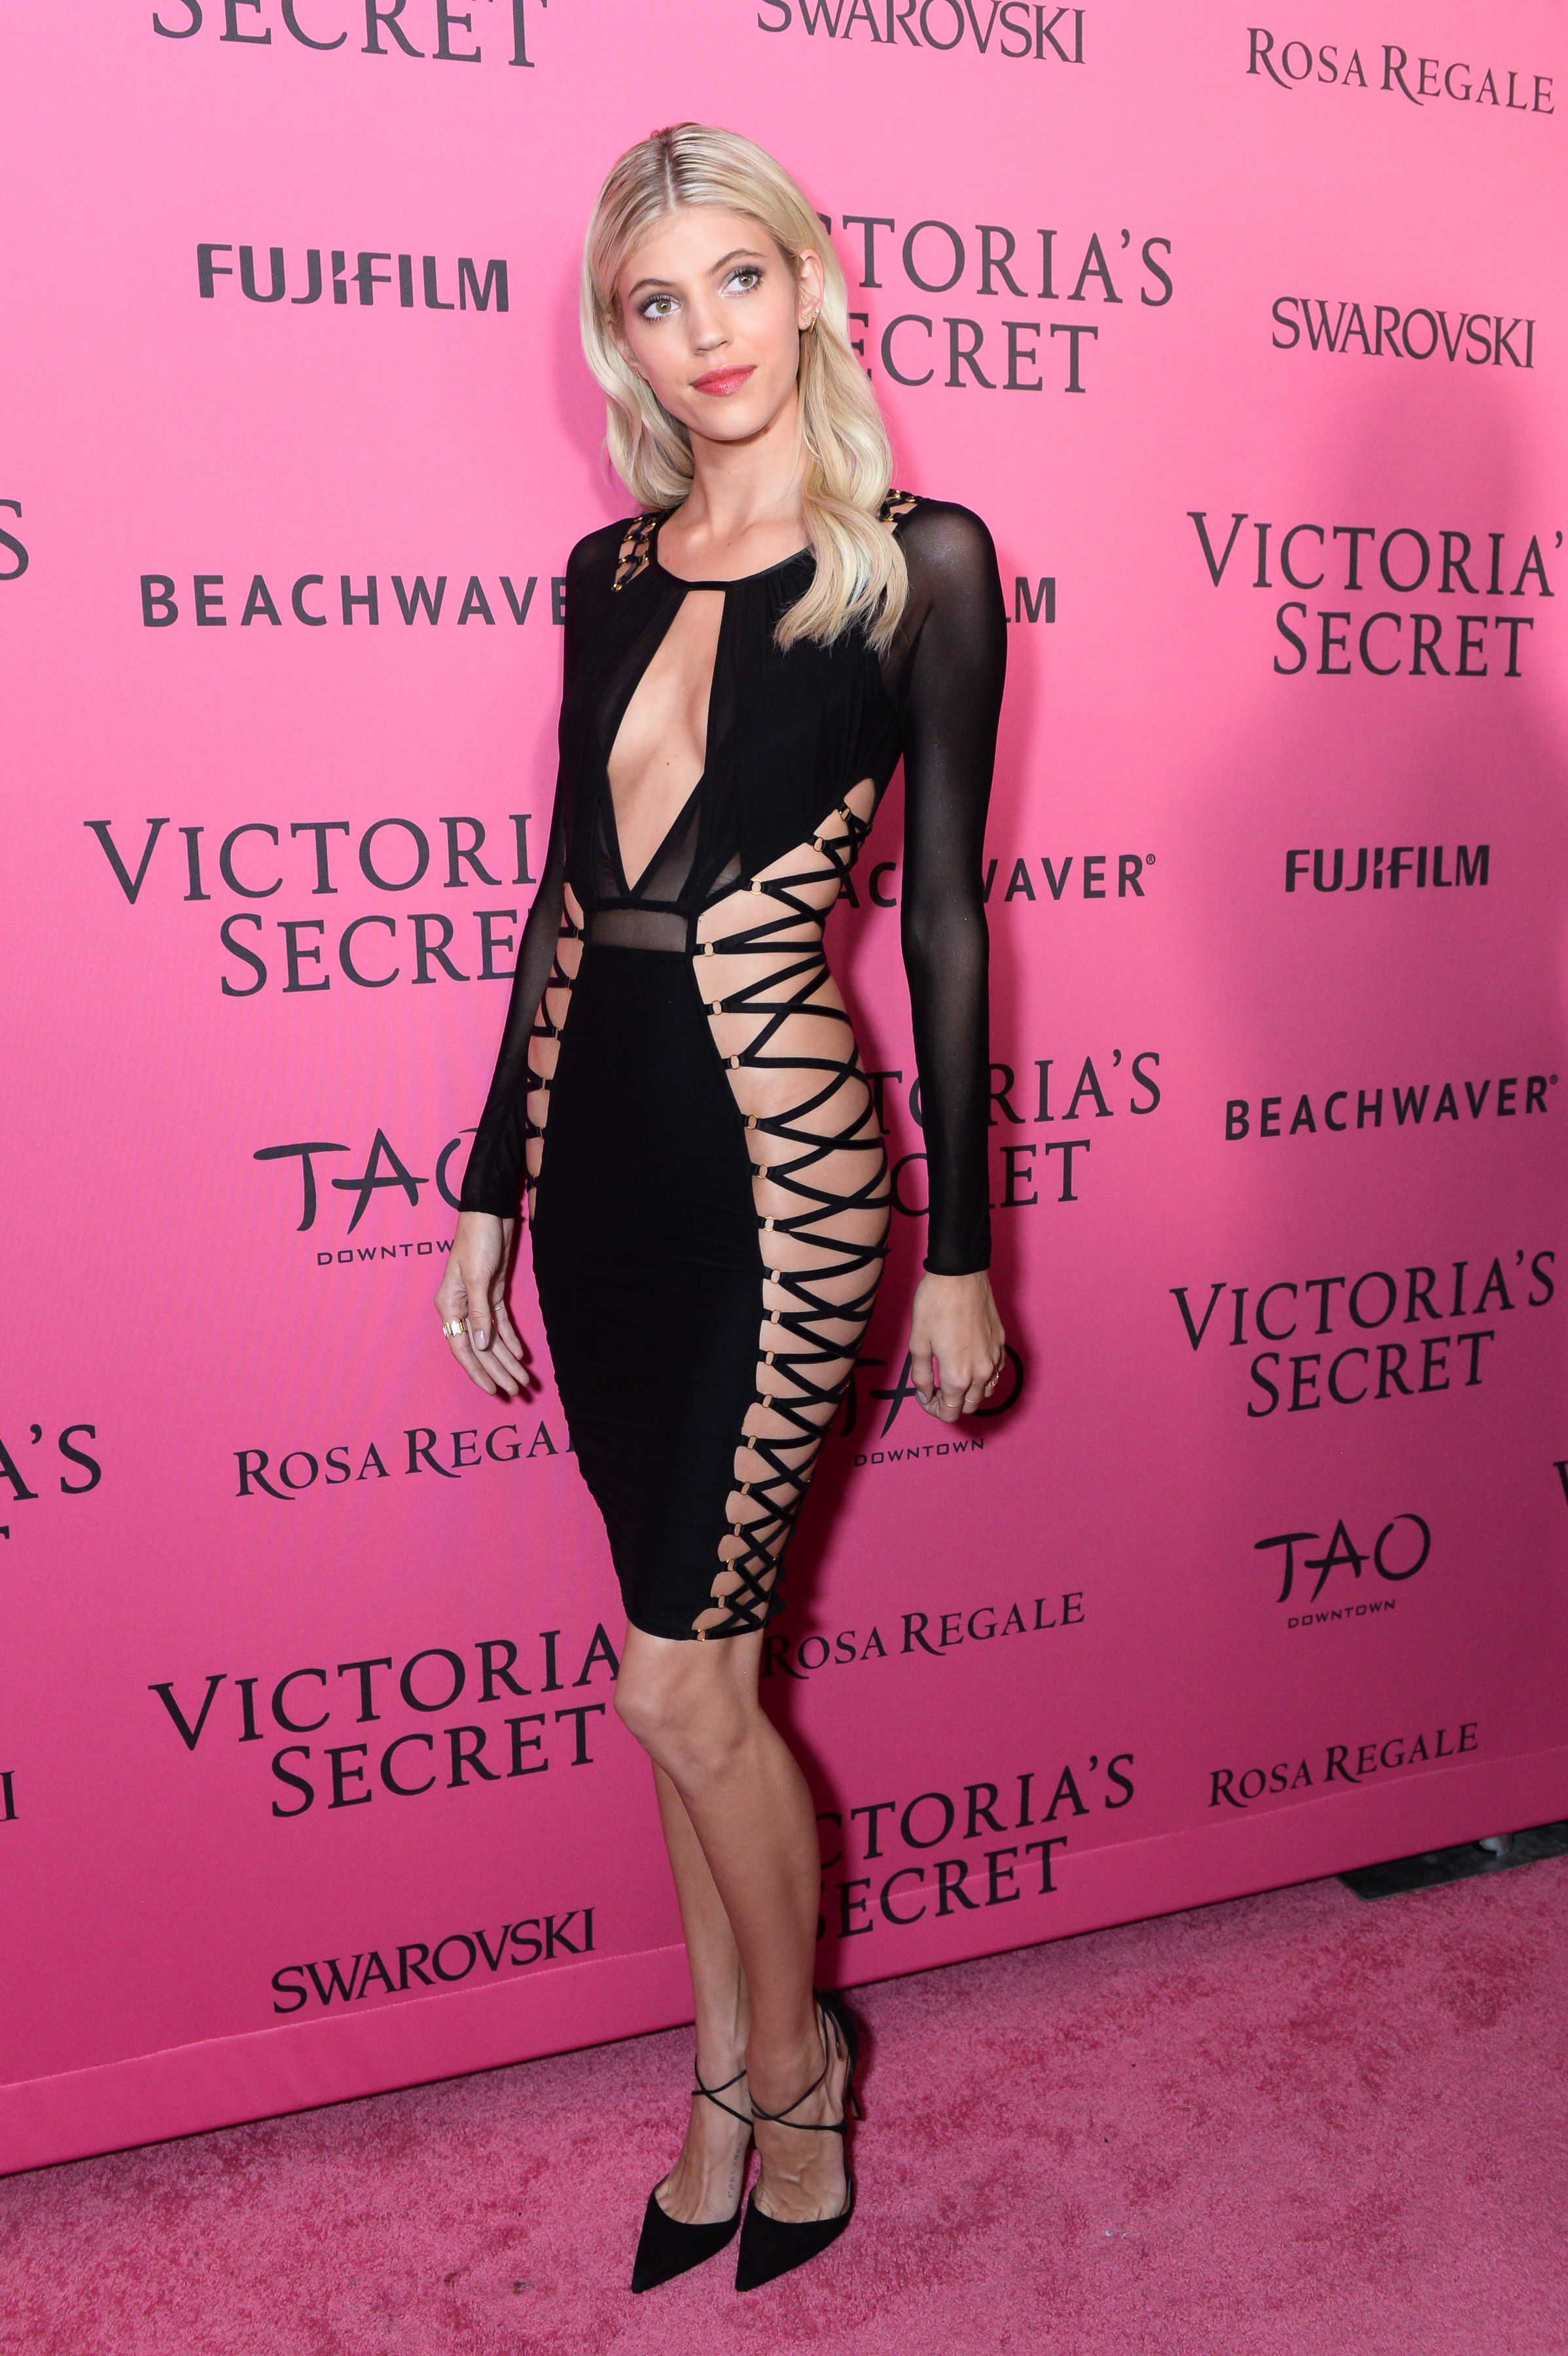 See What The Victoria S Secret Angels Wore To The After Party Victoria Secret Victoria Secret Angels Victoria Secret Fashion Show [ 3600 x 2396 Pixel ]